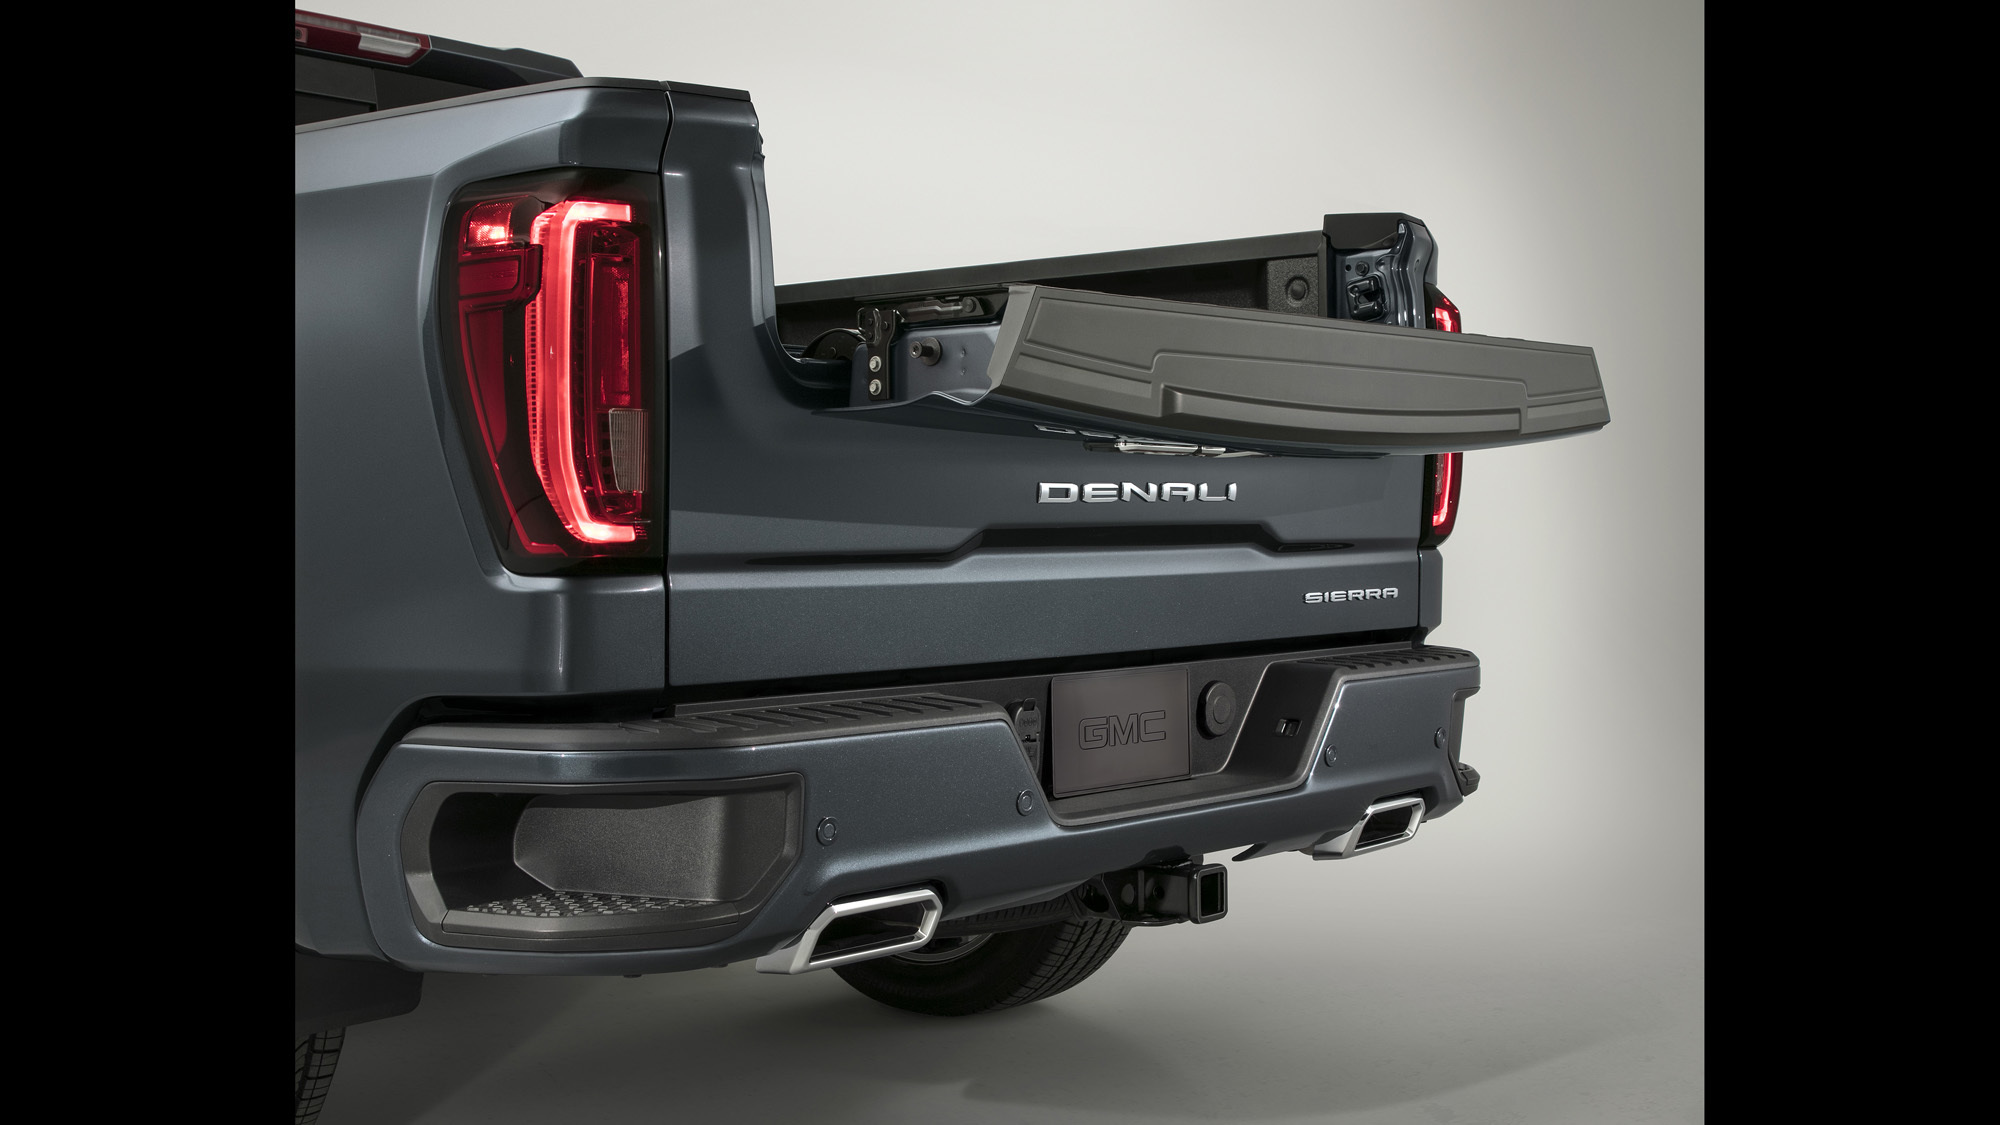 New 2019 GMC Sierra revealed with a carbon-fiber bed ...